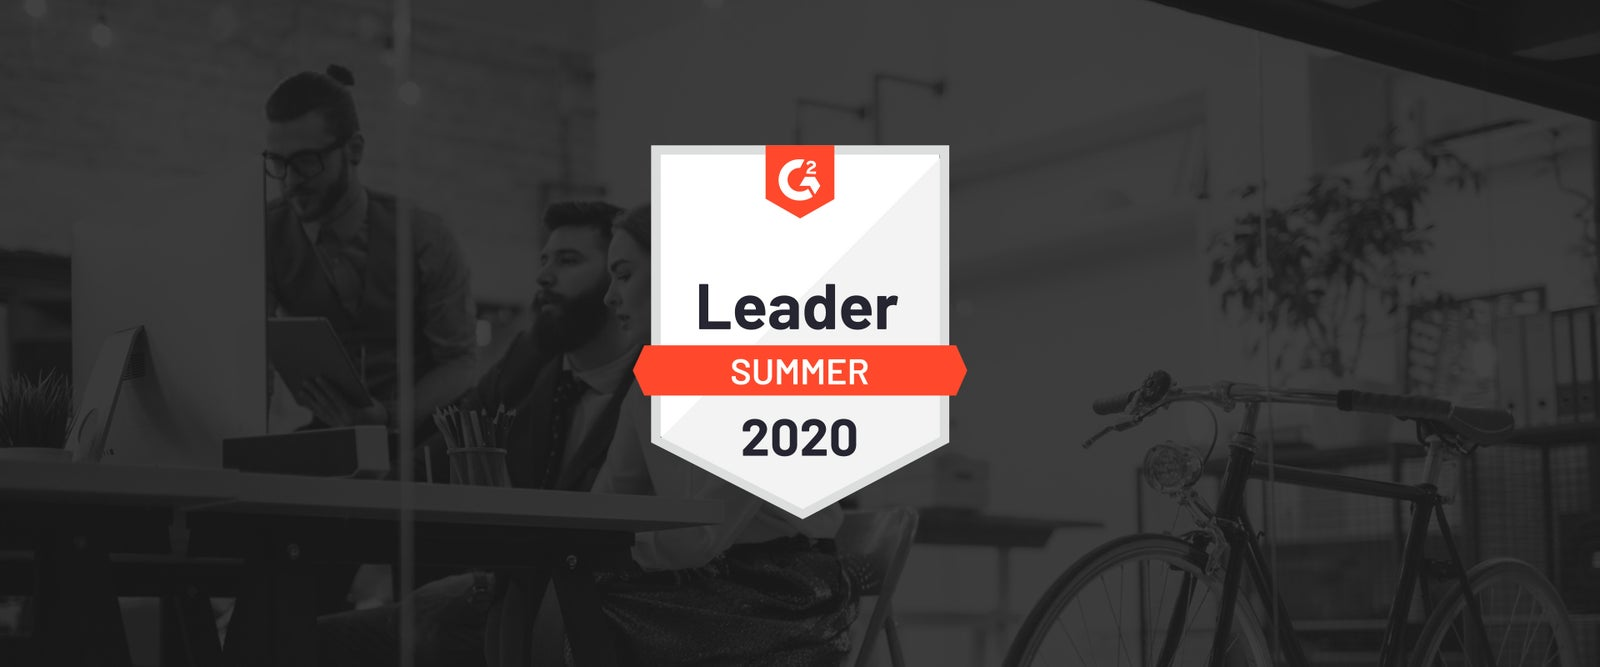 Kentico Kontent named a Leader for Summer 2020 in G2 Grid for Headless CMS